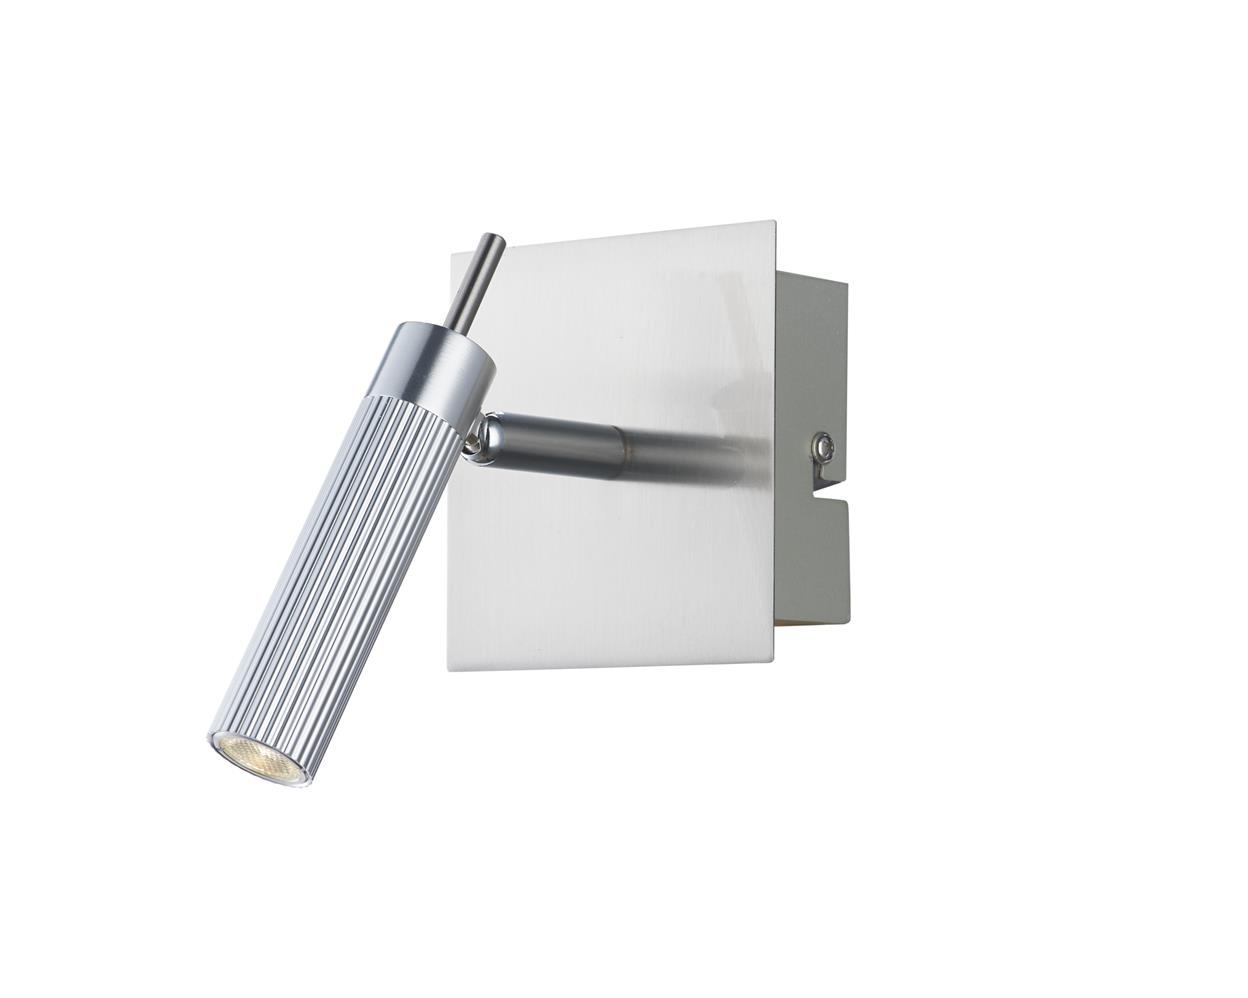 Dar ARN7168 Arno LED single wall spotlight in satin chrome